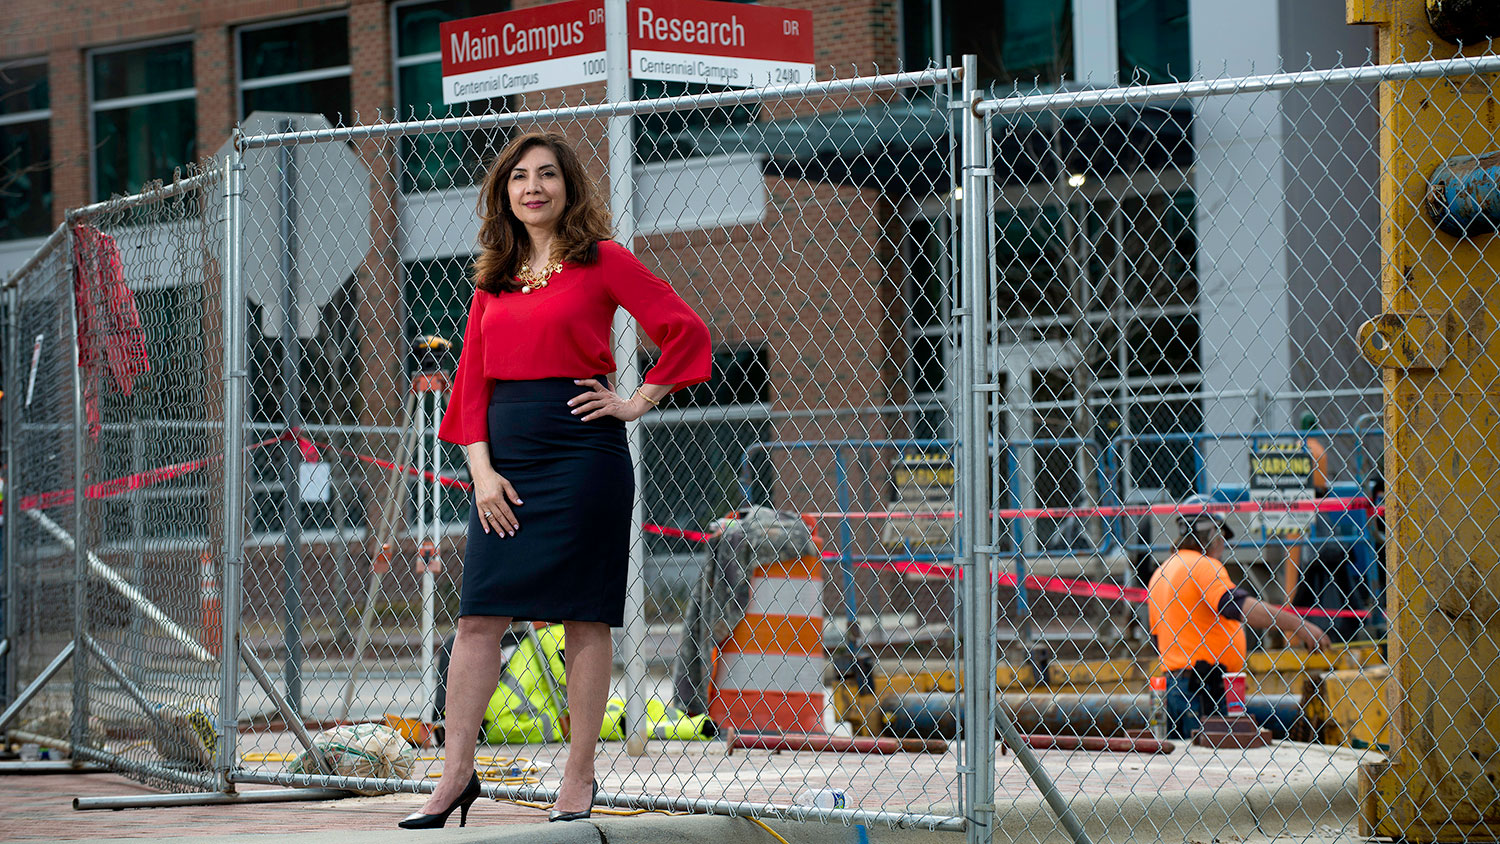 A woman standing in a construction area of NC State's campus.